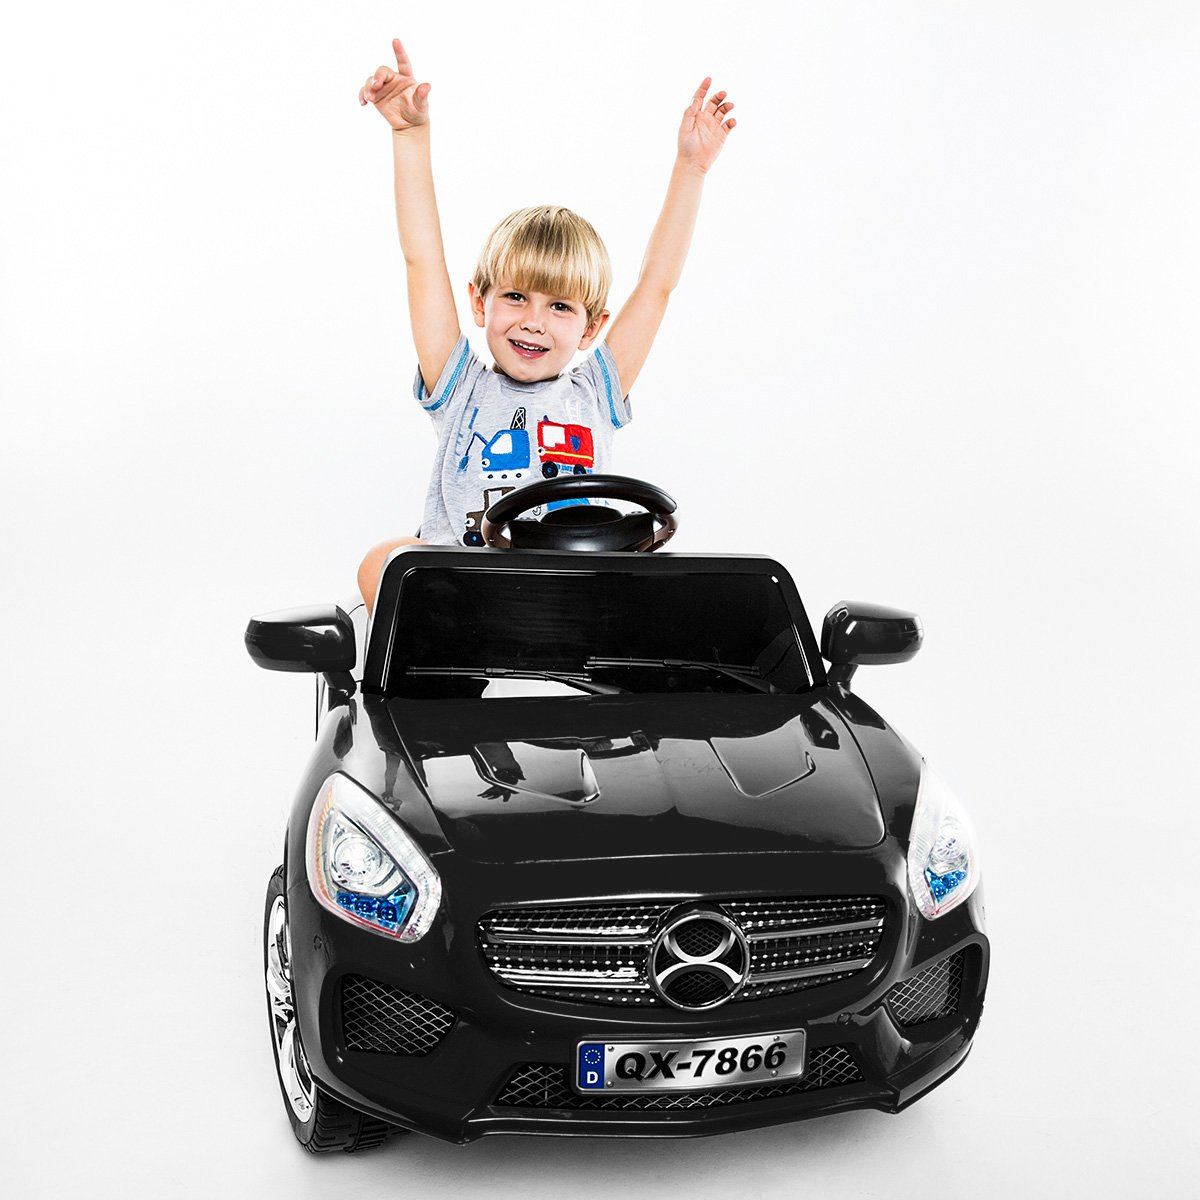 Costway Kids Ride On Car 6V Electric Battery Remote Control Radio Children Toys MP3 - Black